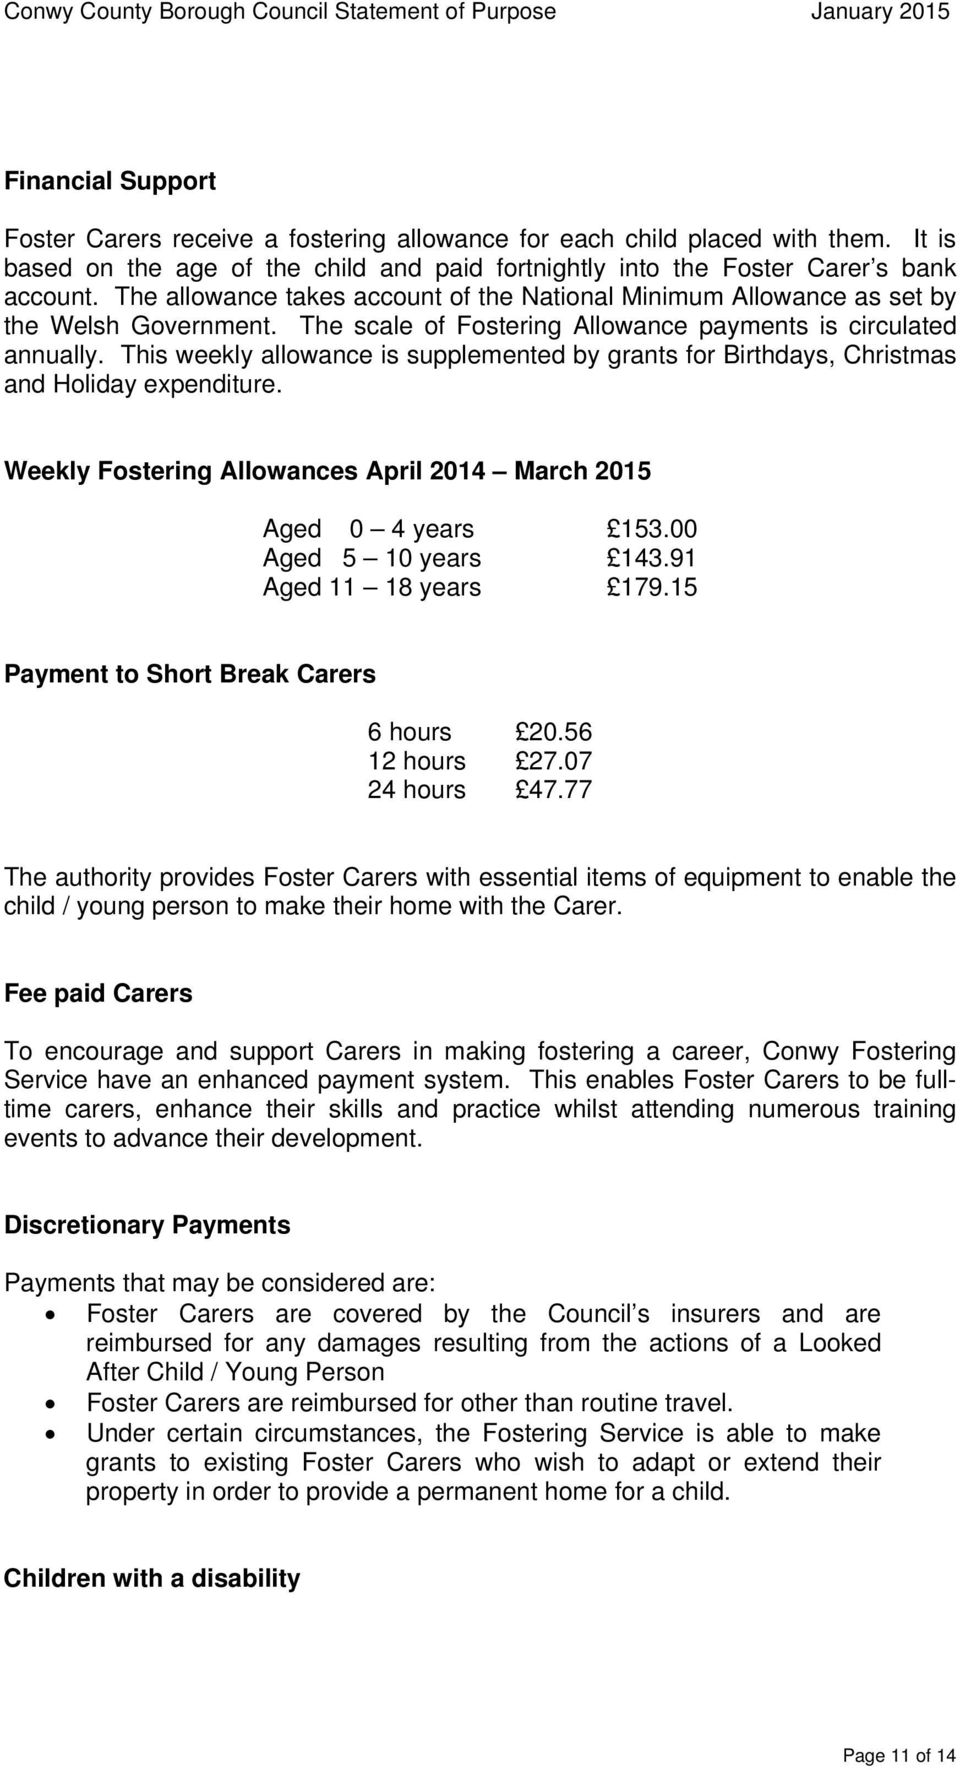 This weekly allowance is supplemented by grants for Birthdays, Christmas and Holiday expenditure. Weekly Fostering Allowances April 2014 March 2015 Aged 0 4 years 153.00 Aged 5 10 years 143.